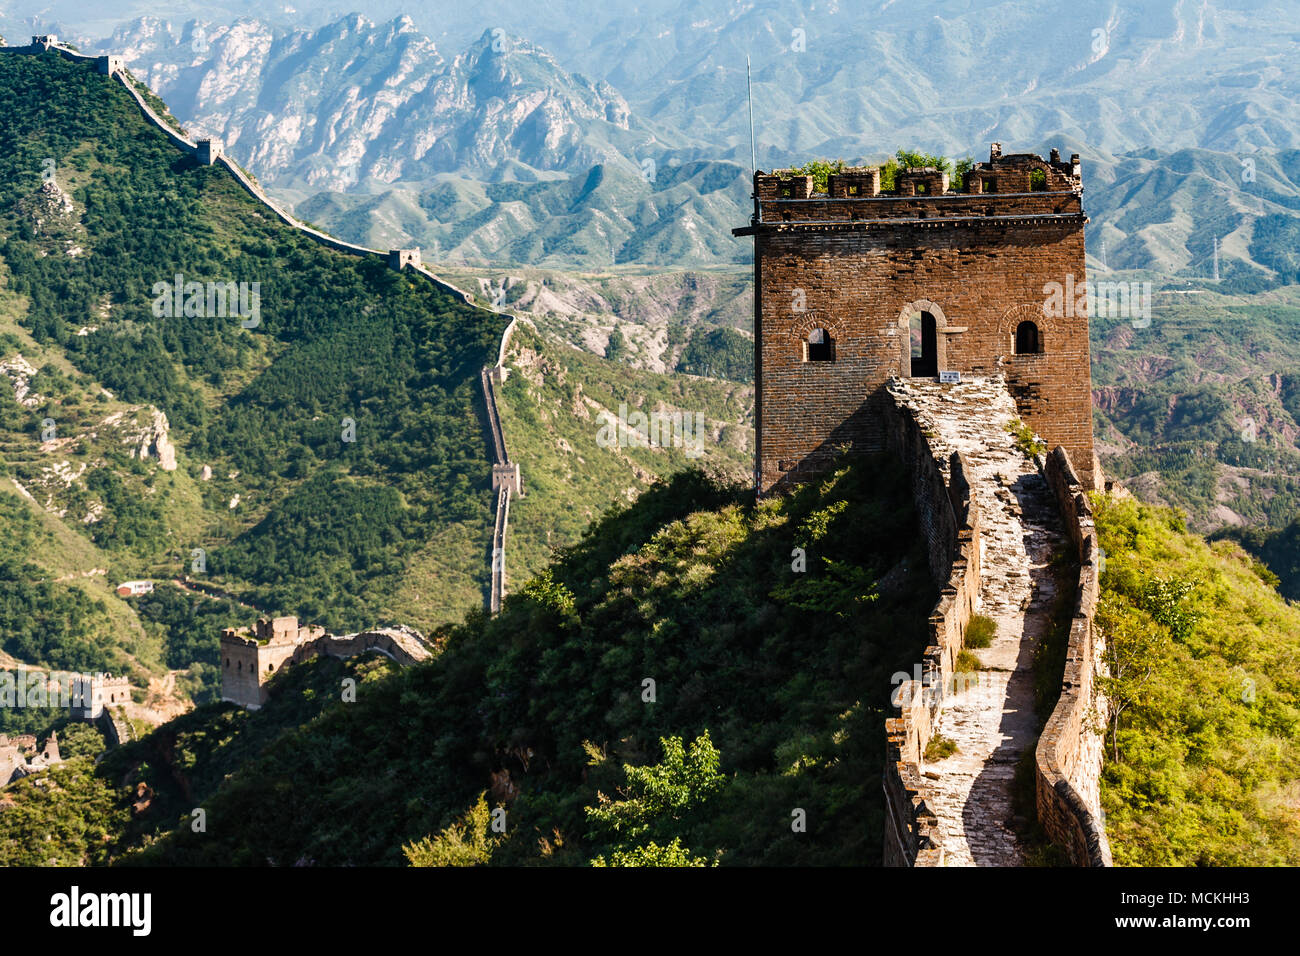 Closeup of tower entrance on Great Wall of China with mountainous  countryside in background - Stock Image